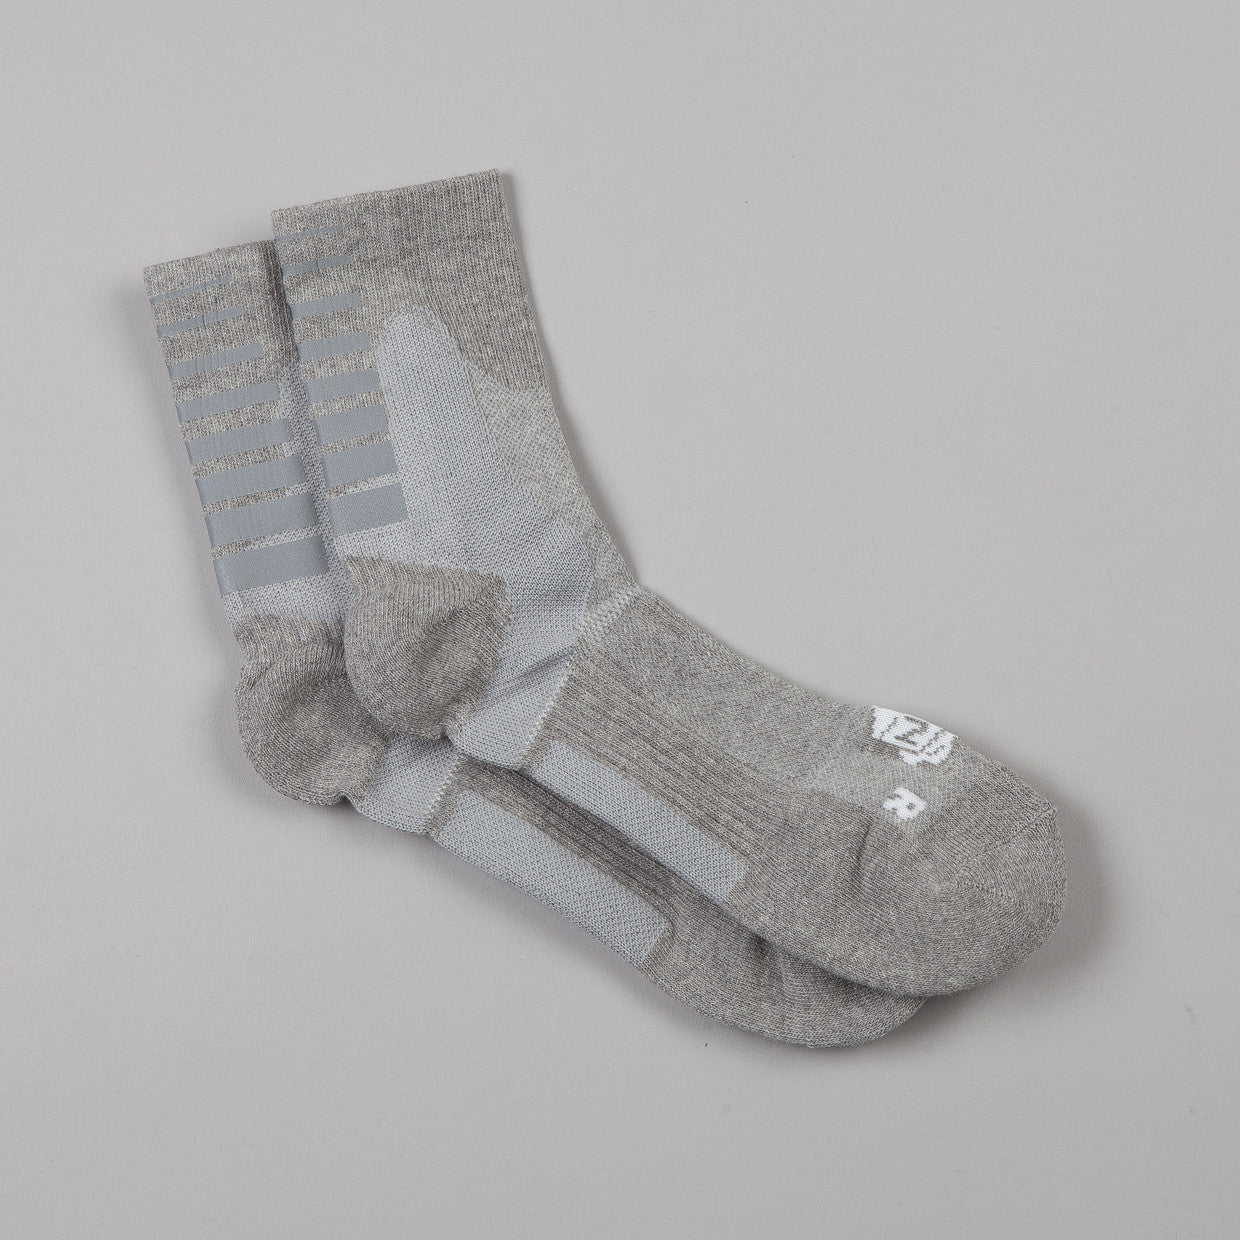 ICNY Quarter Ankle Gradient Socks Heather Grey